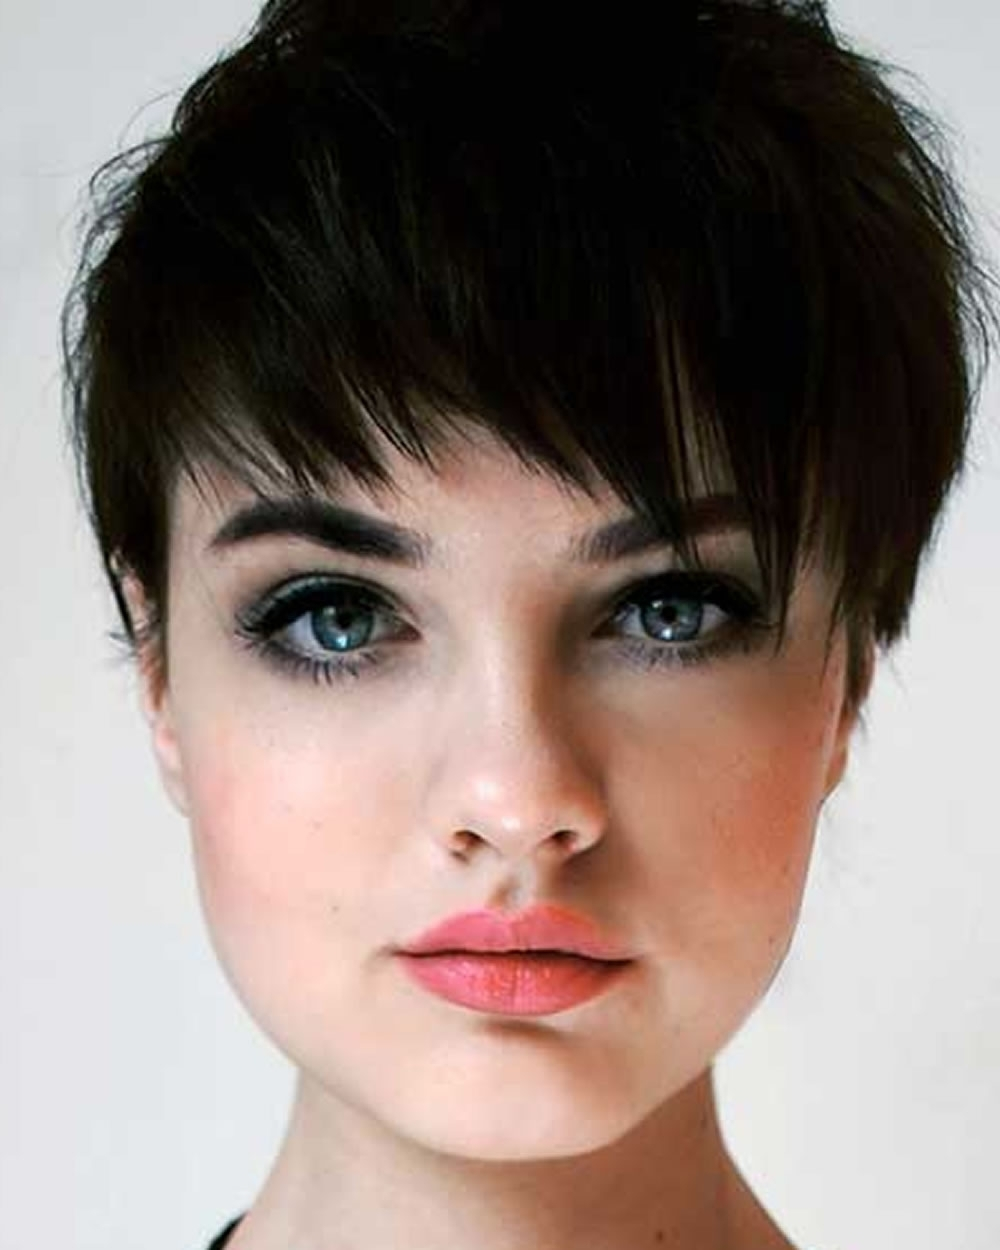 Pixie Hairstyles Fine Hair For Round Face 2018 2019 | Page 4 Of 8 Within Current Pixie Hairstyles On Round Faces (View 6 of 15)